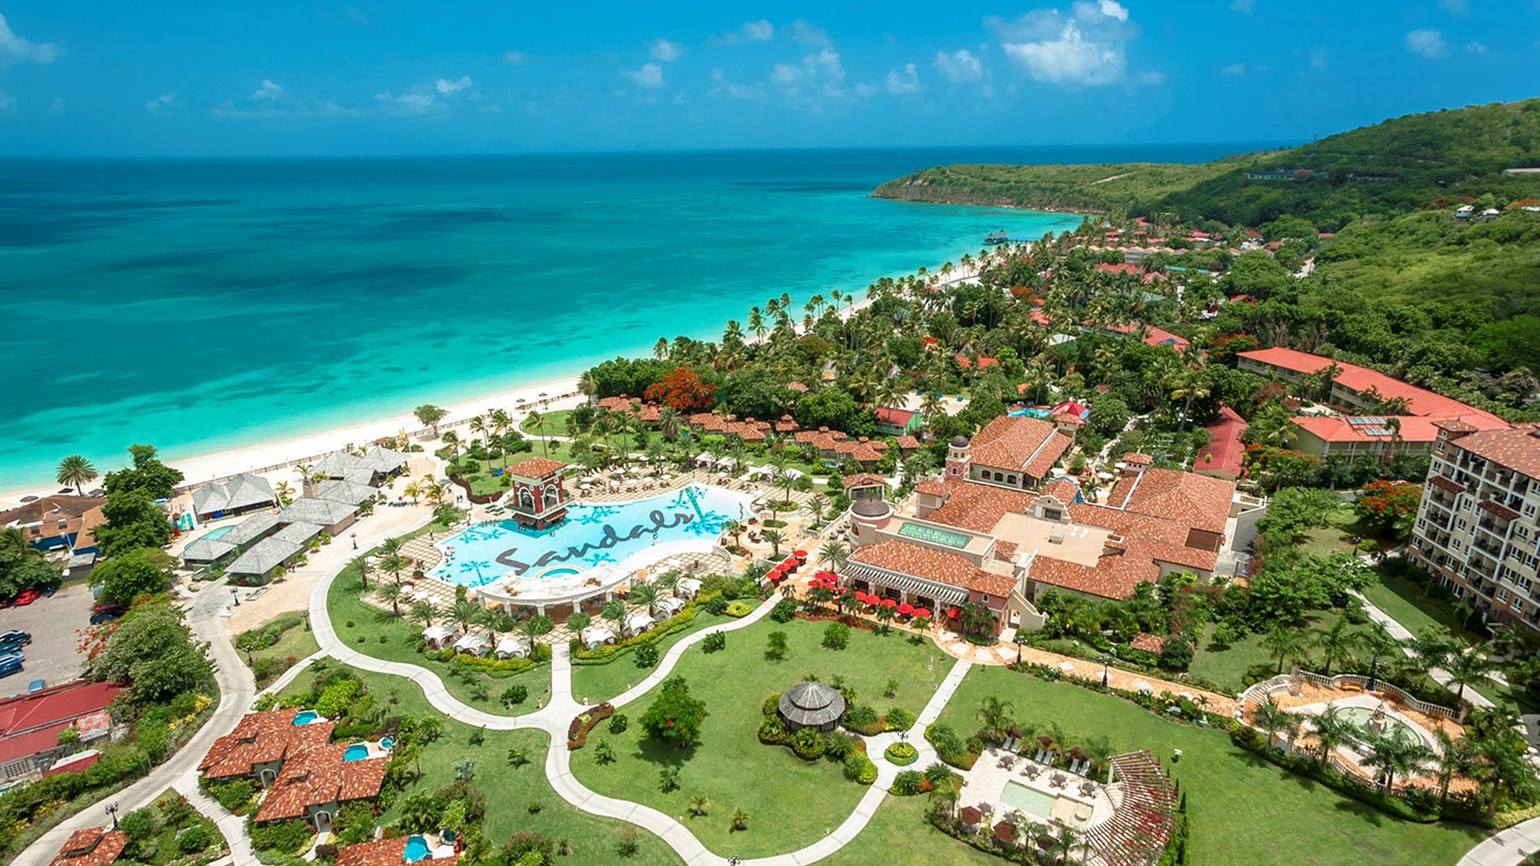 Sandals Grande Antigua closing to do maintenance work